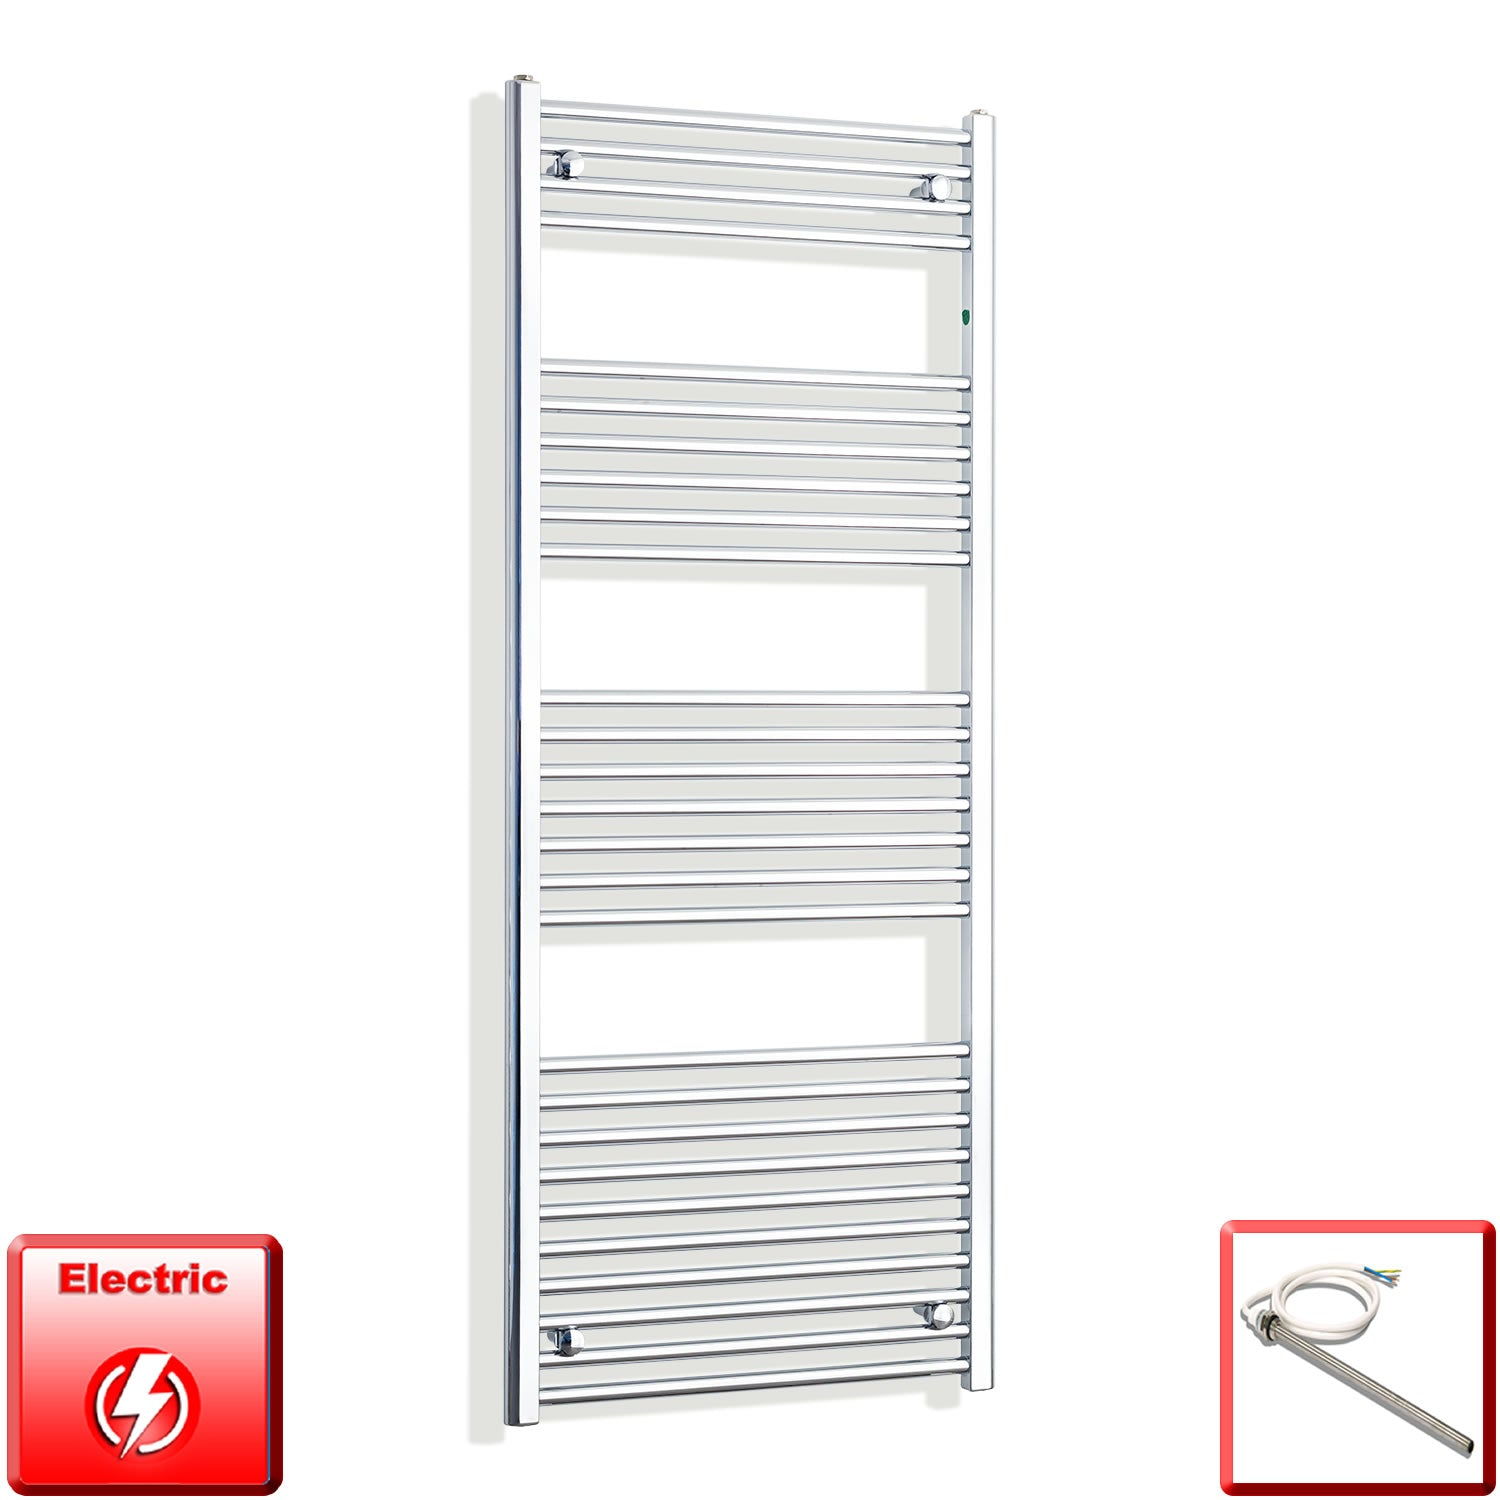 650mm Wide 1600mm High Pre-Filled Chrome Electric Towel Rail Radiator With Single Heat Element